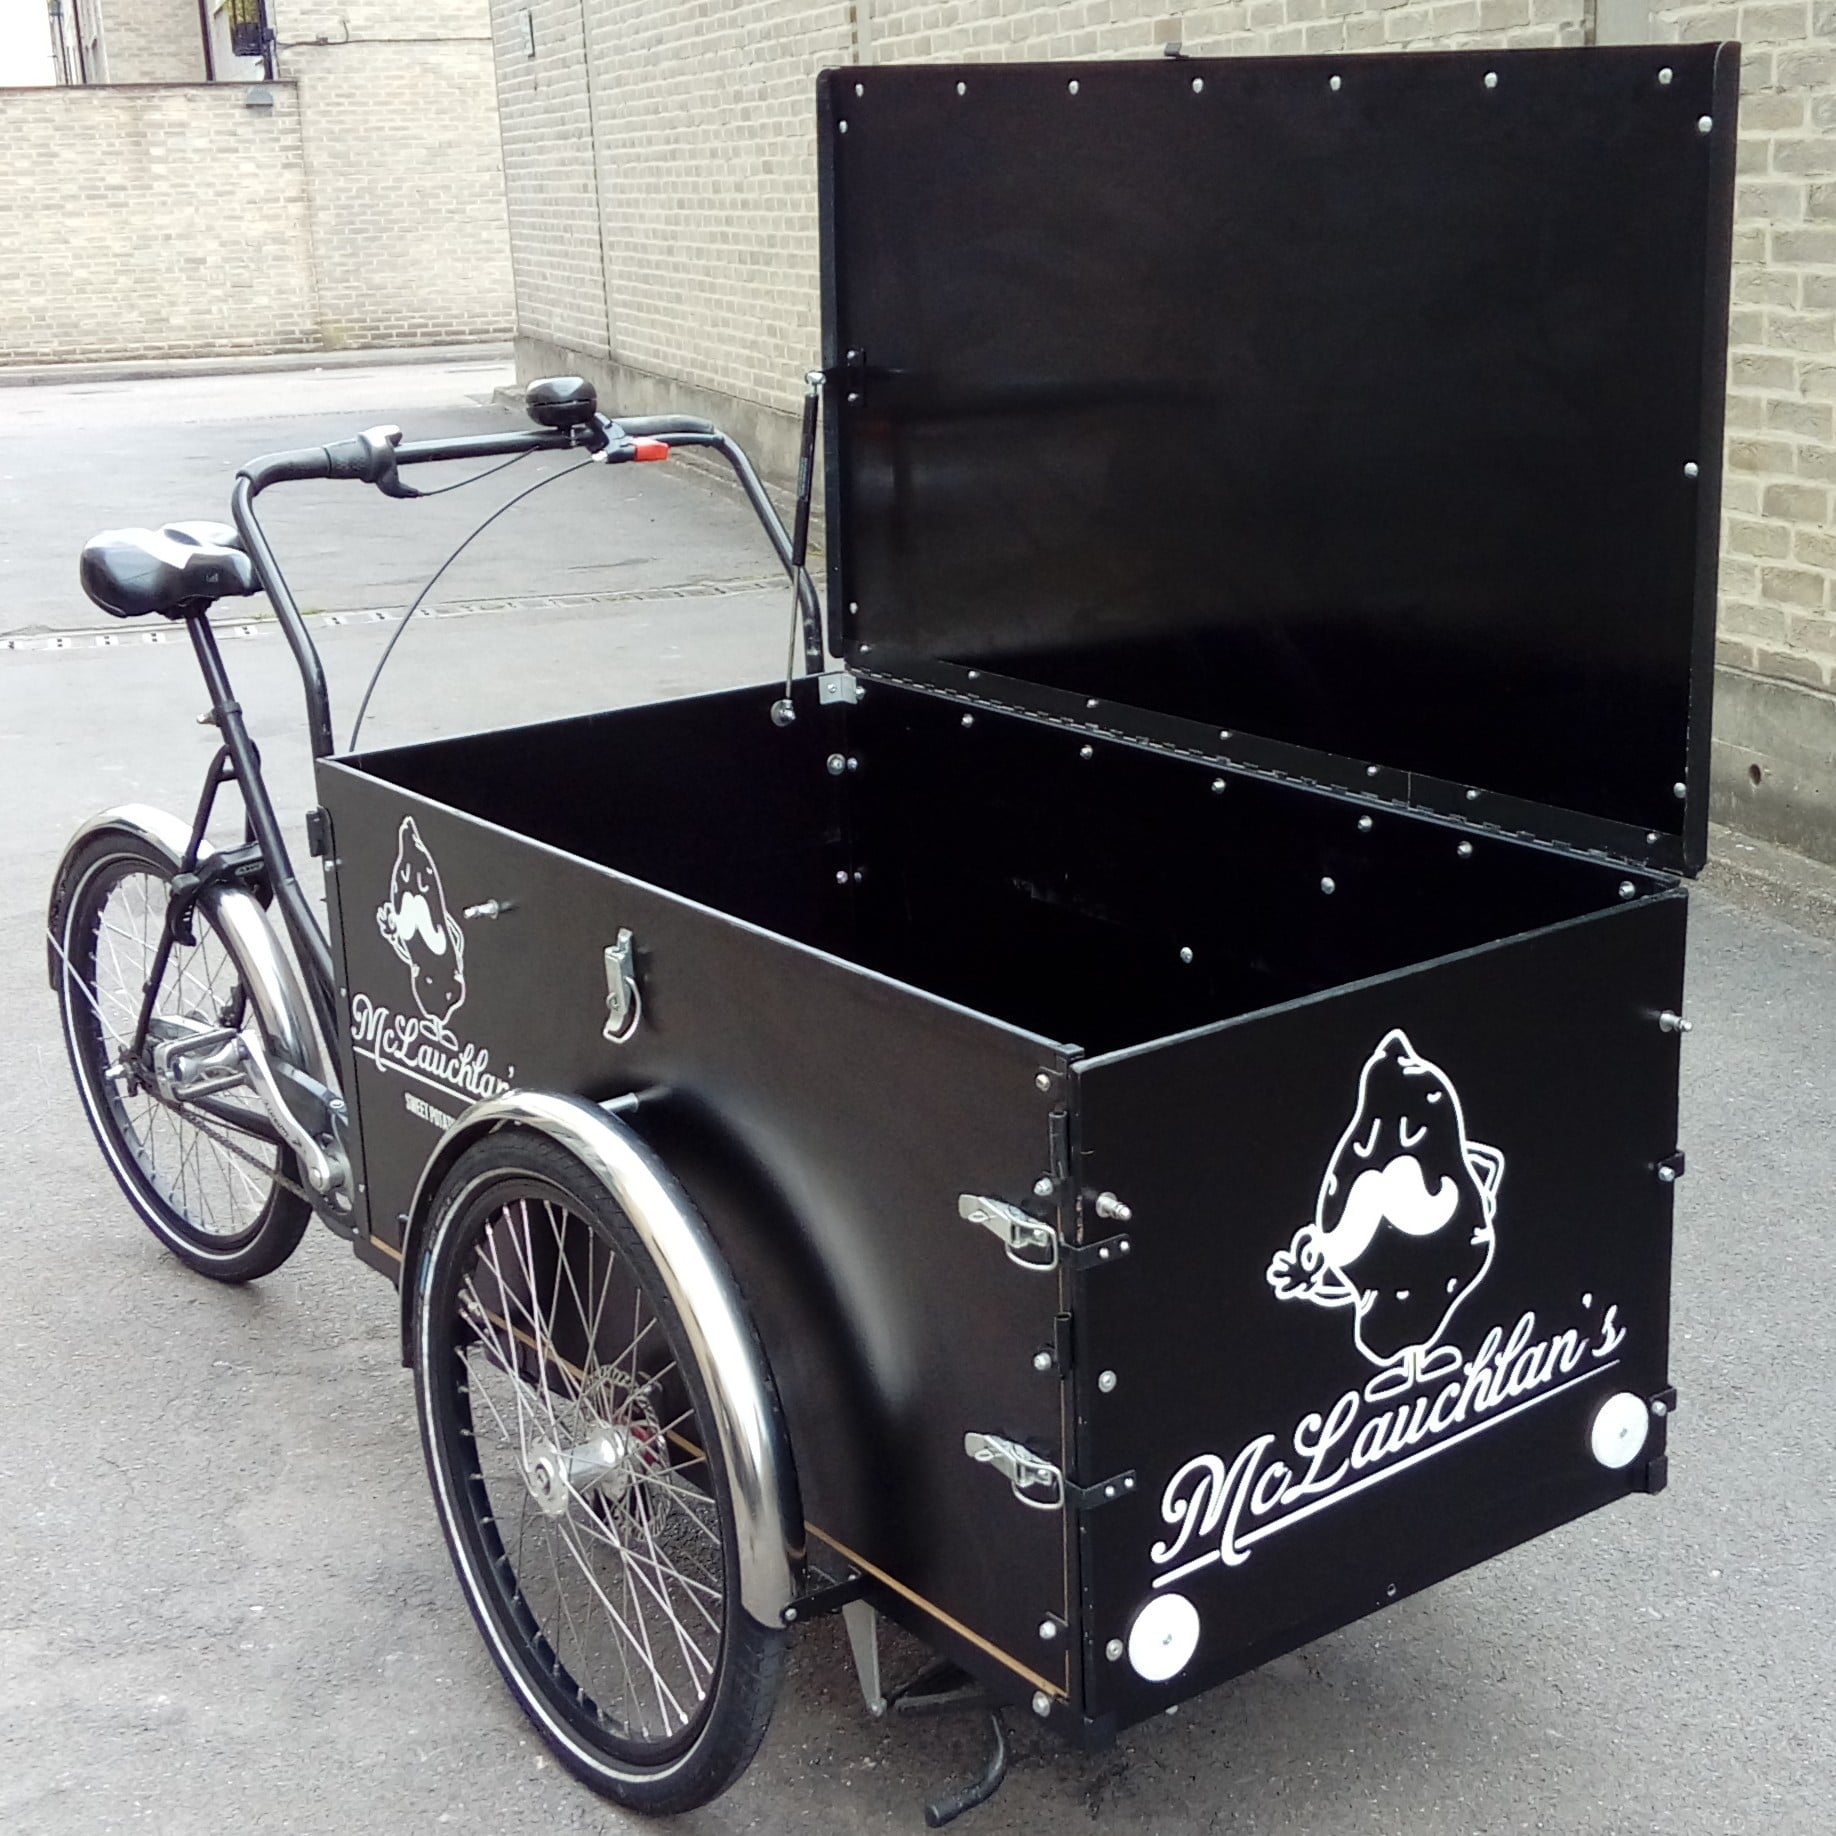 londongreencycles Christiania Cargo Long door + lid